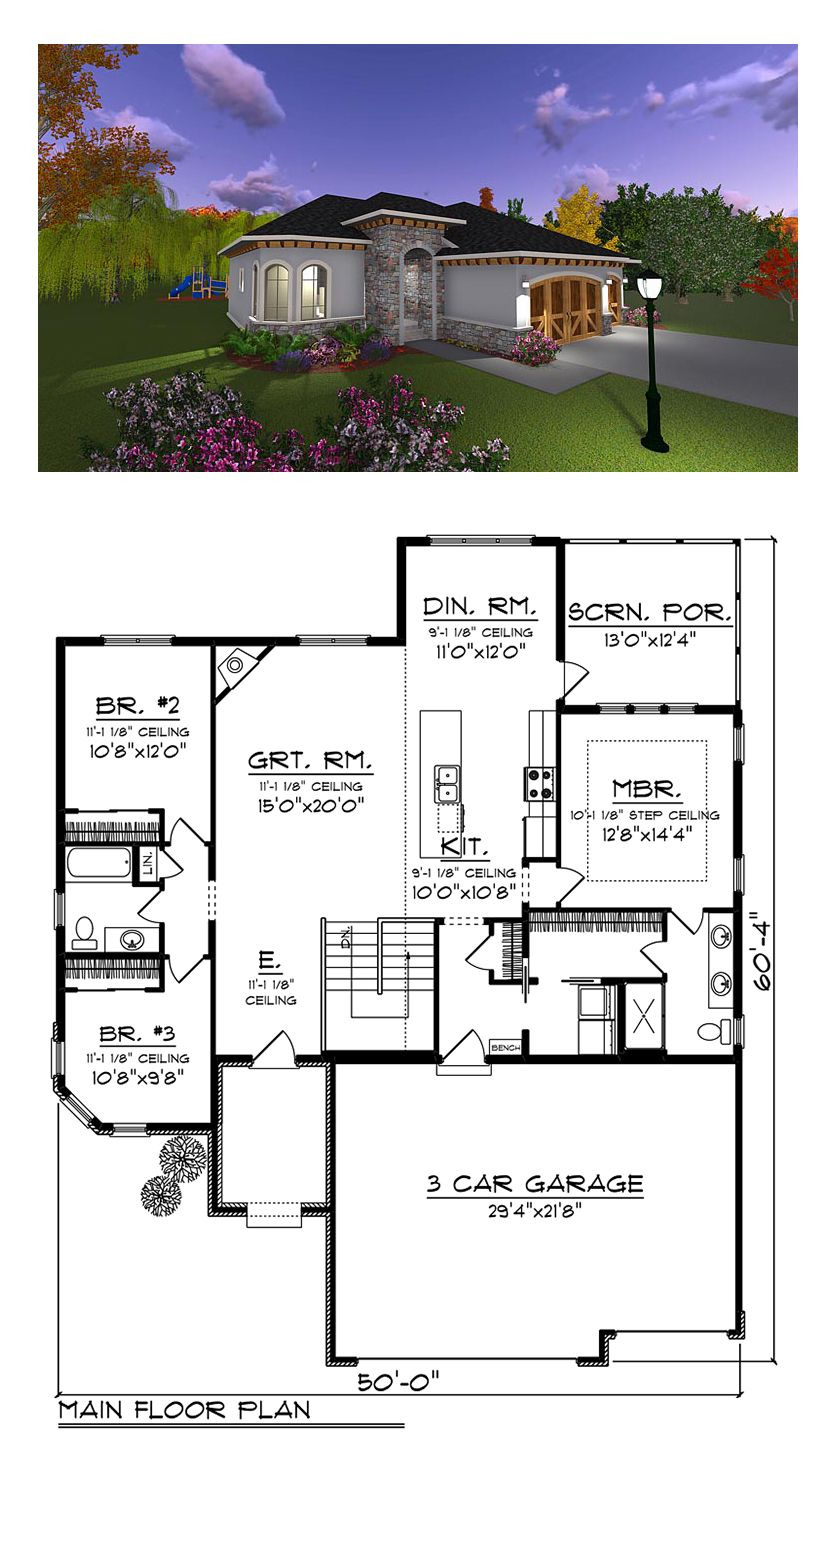 2 Bedroom Retirement House Plans New Italian Style House Plan Number with 3 Bed 2 Bath 3